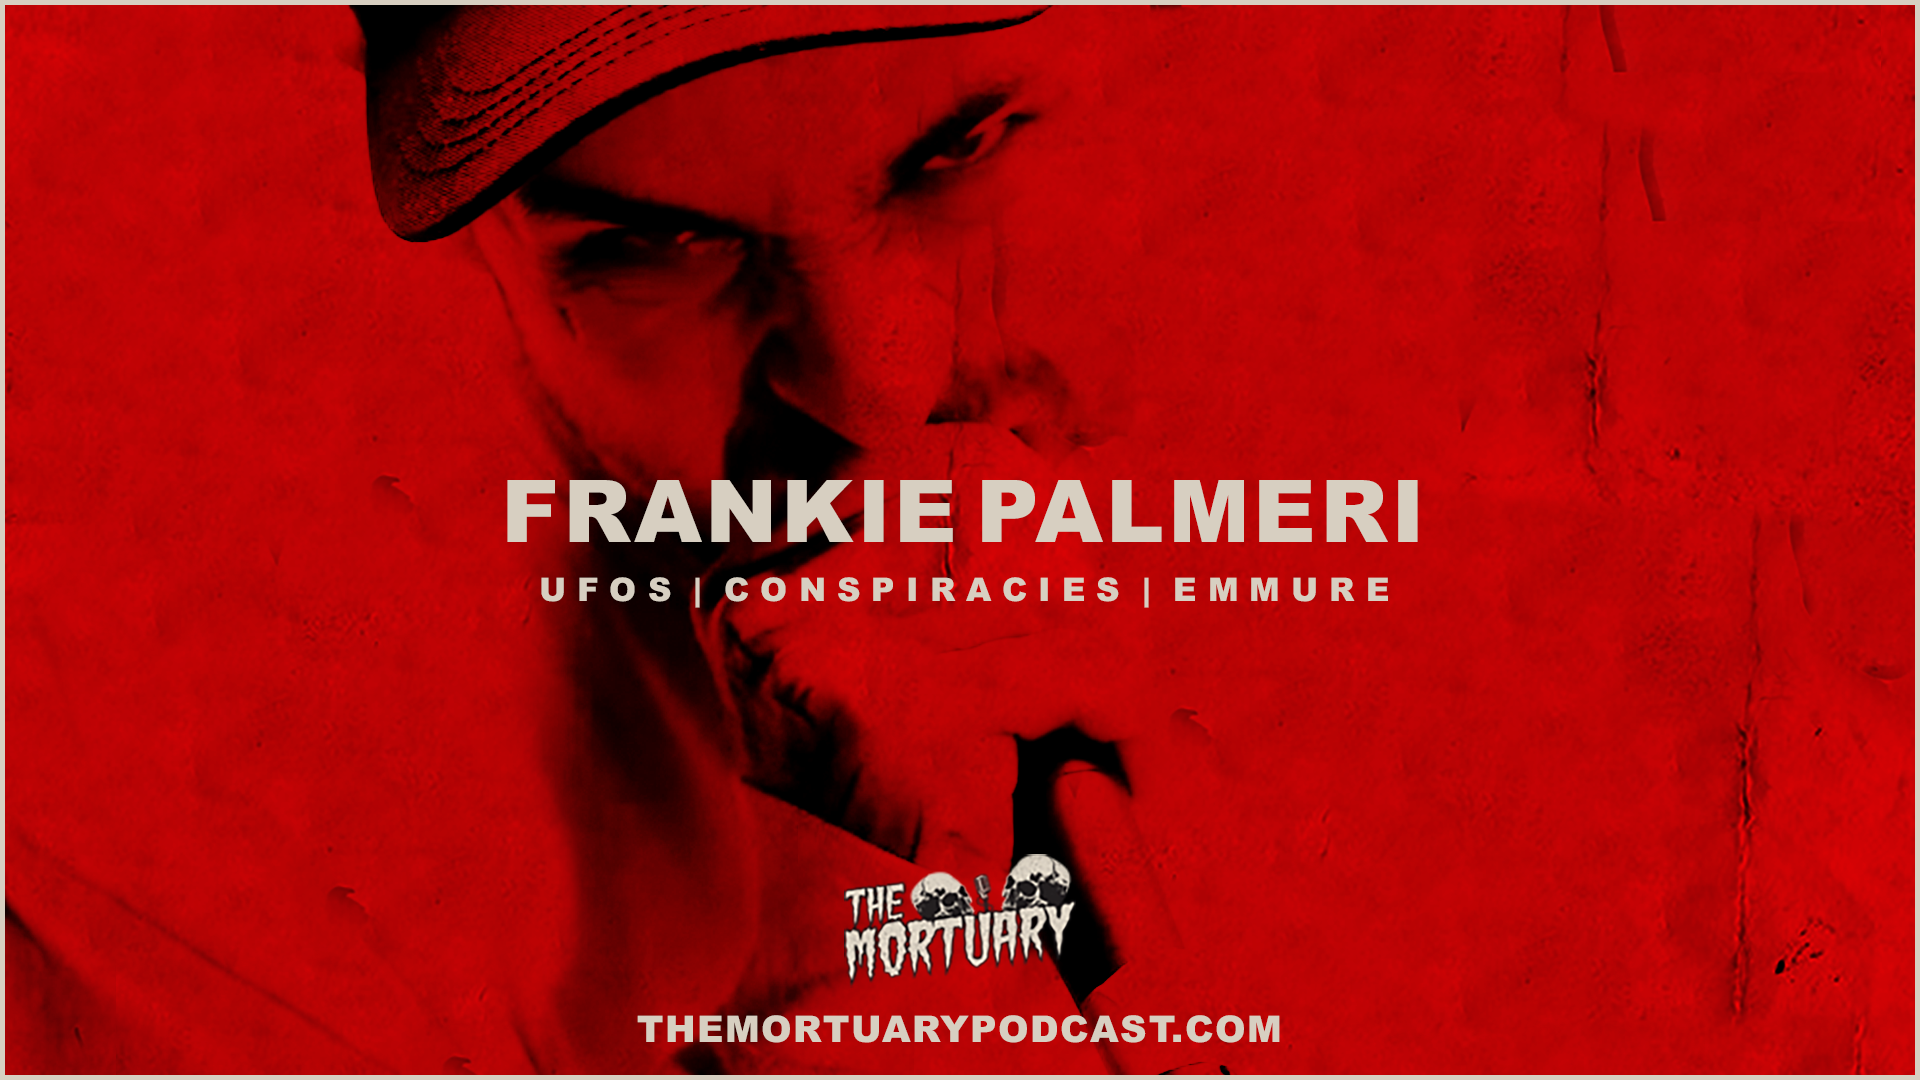 frankie palmeri, the mortuary, horror, scary, podcast, ufo, conspiracies, emmure